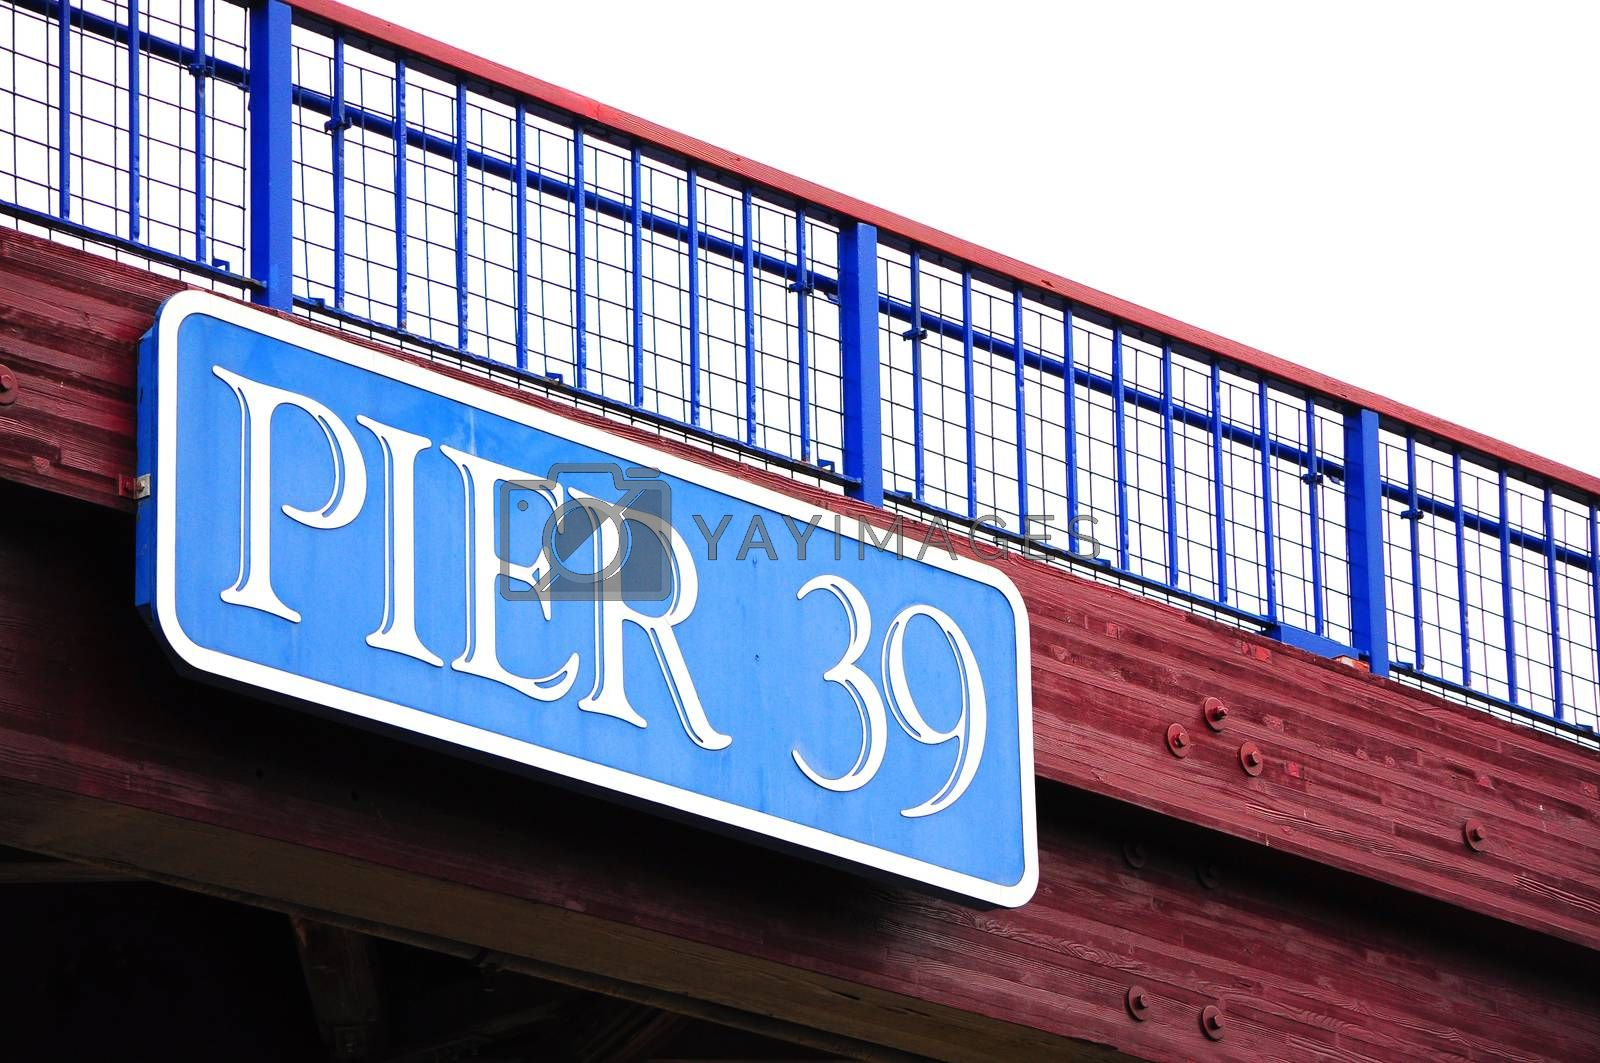 Pier 39 sign on flyover. Pier 39 is a shopping center and popular tourist attraction built on a pier, in Fisherman's Wharf in San Francisco, California.